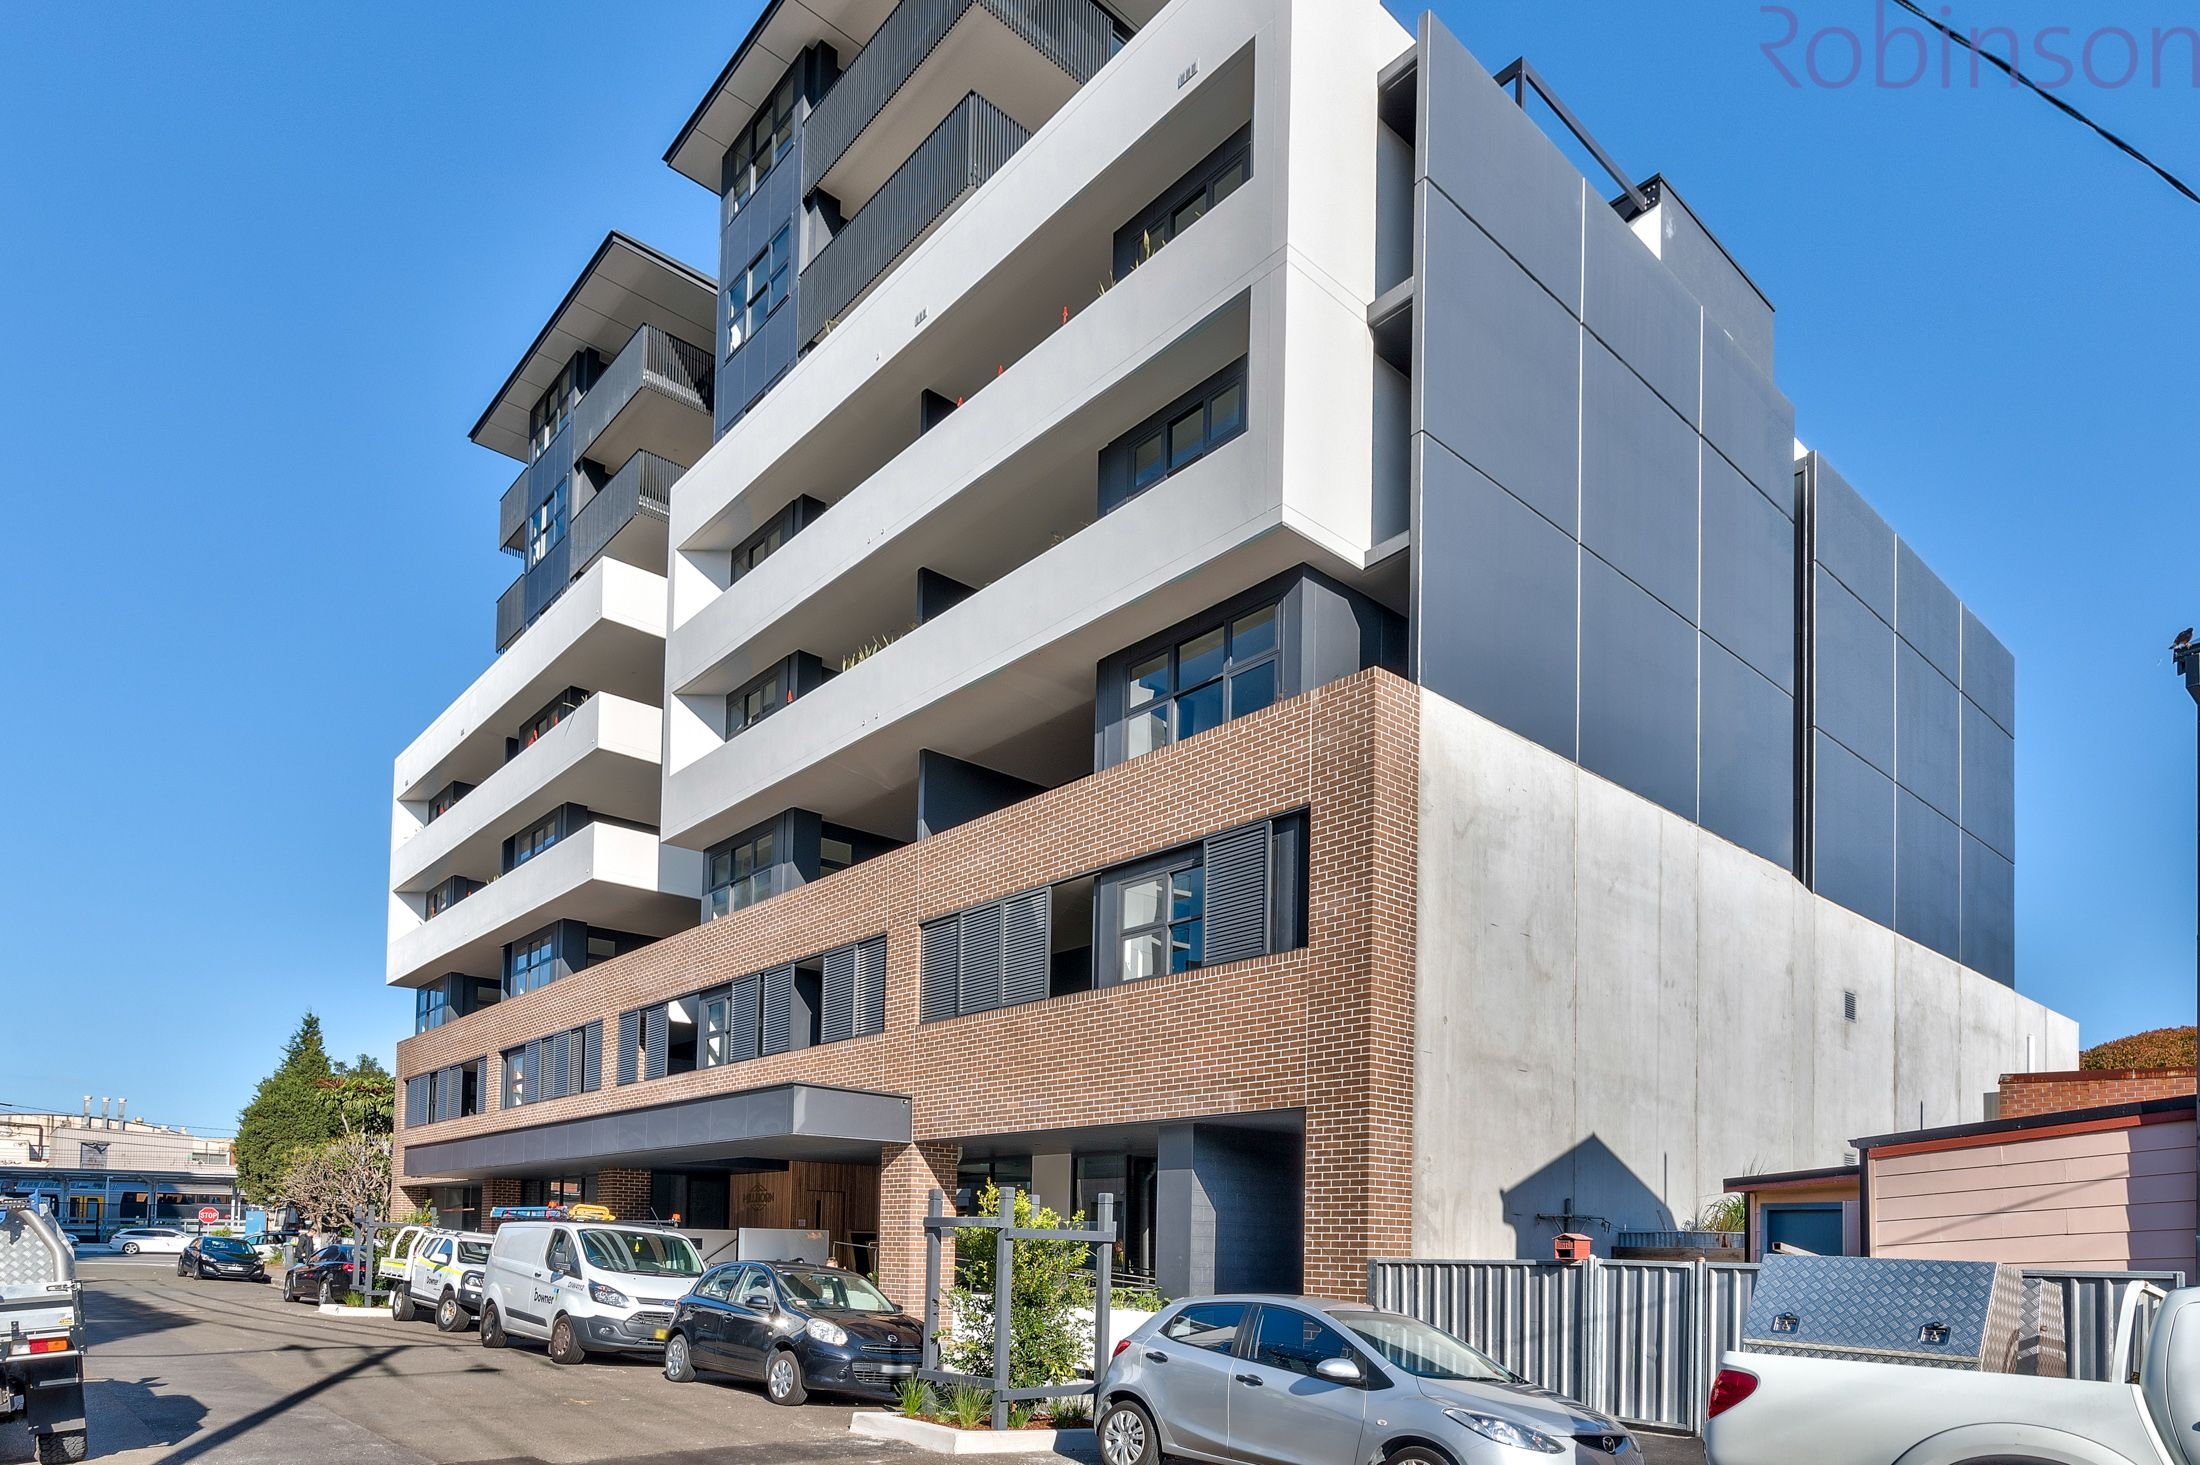 Level 5/502/7 Wickham Street, Wickham